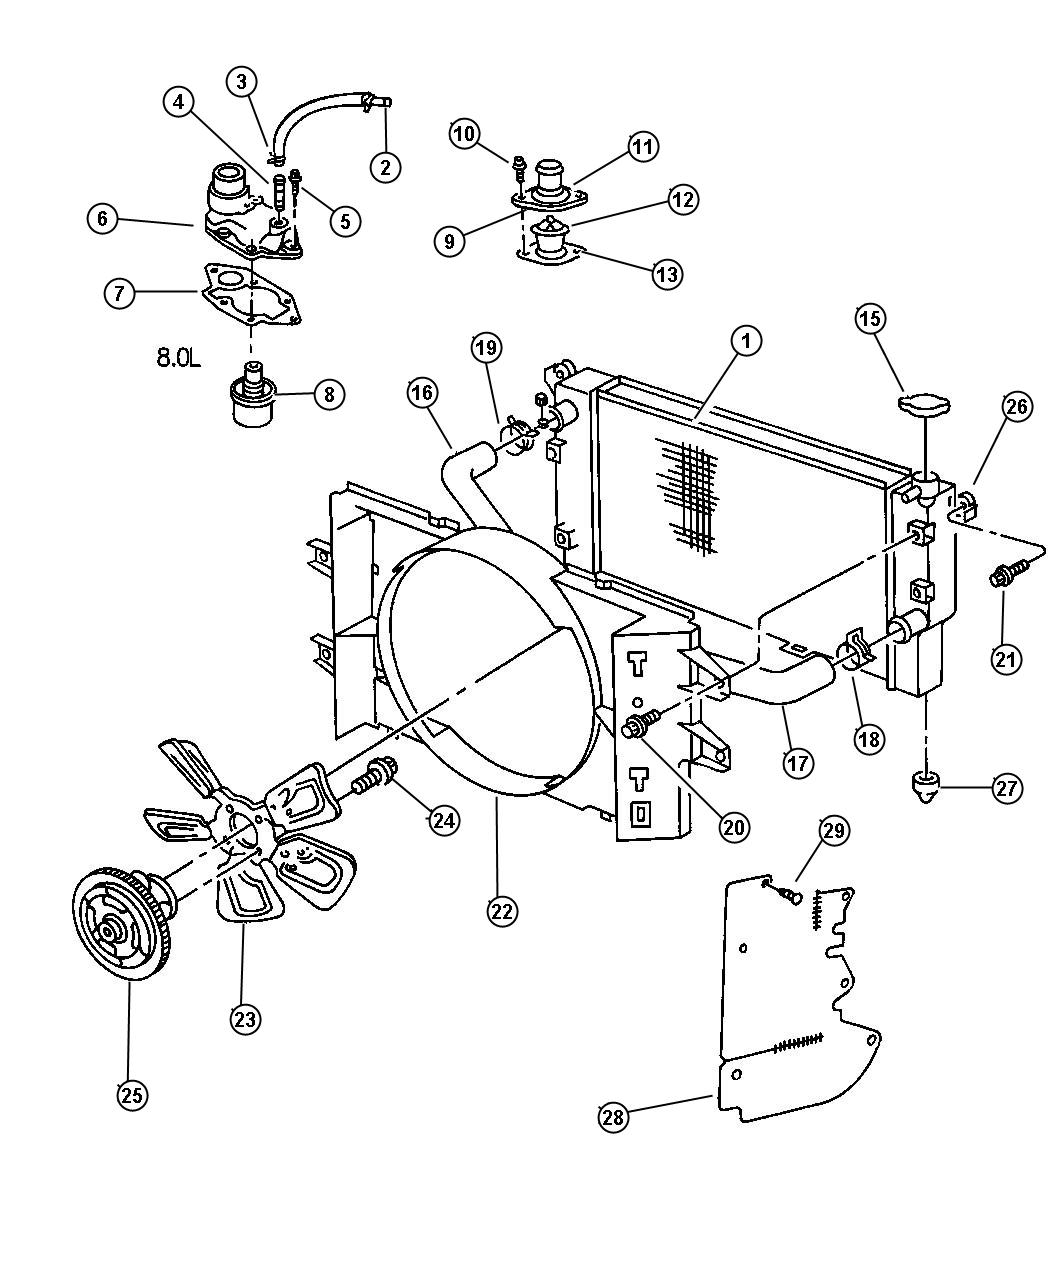 Fine 1998 dodge ram wiring diagram images the best electrical